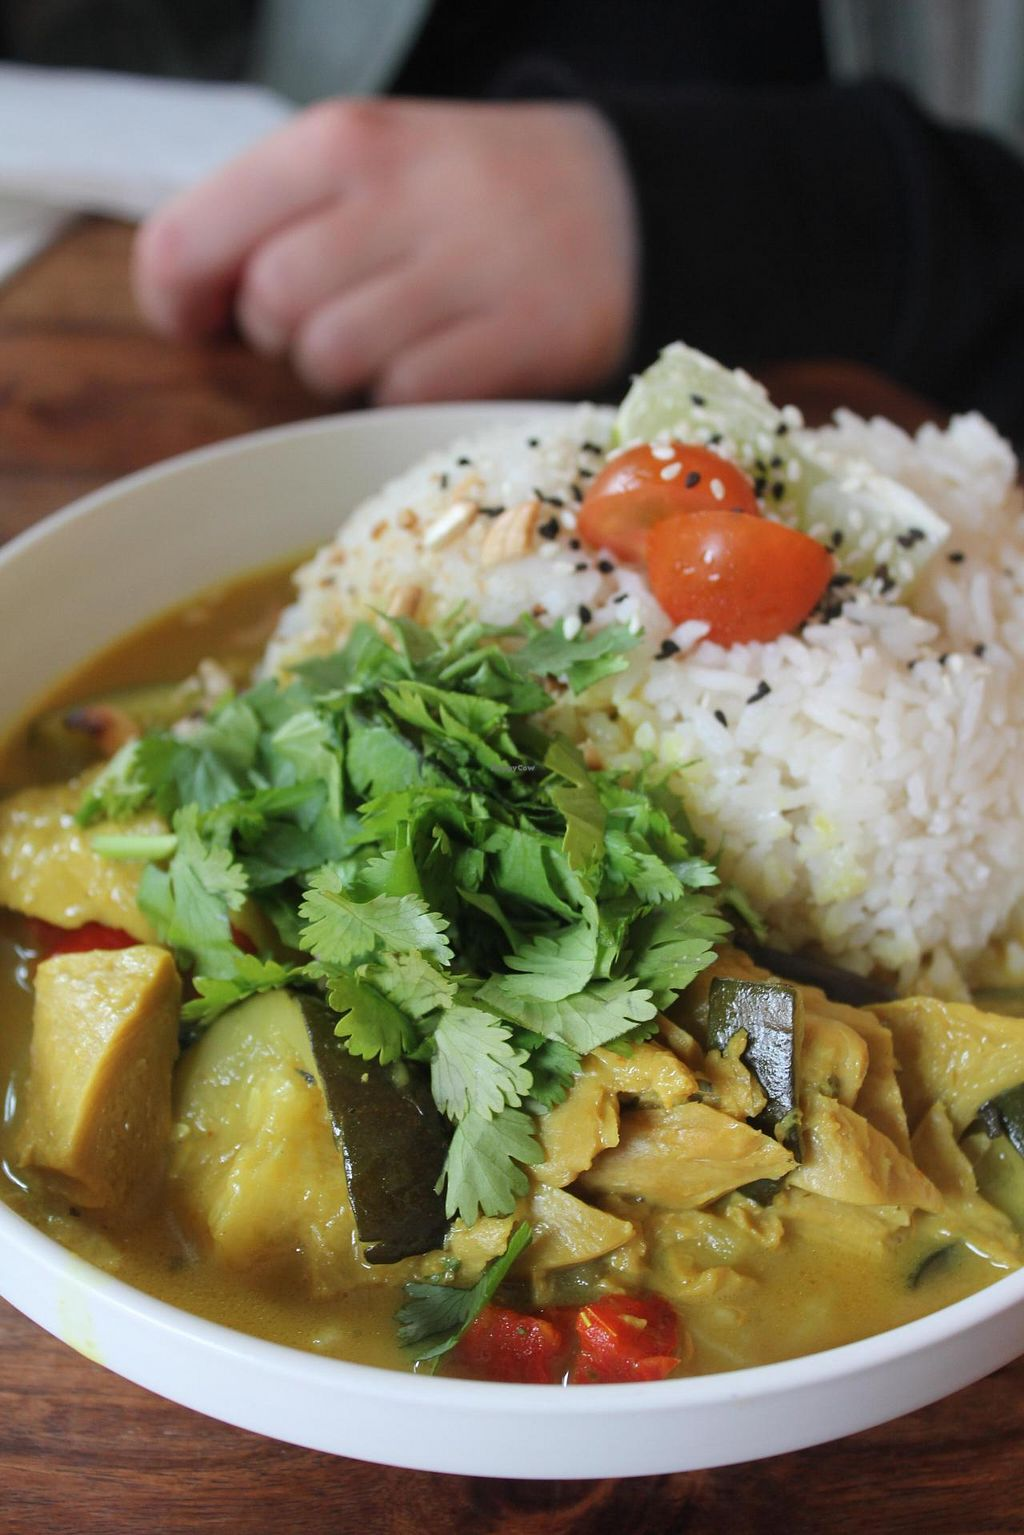 """Photo of Greenway  by <a href=""""/members/profile/Heike.St"""">Heike.St</a> <br/>Thai Curry. (We were not sure, what was inside. Tasted a bit like soy meat but with not spices, but there is also the possibility that it were pieces of artichoke.) Huge portions <br/> June 13, 2015  - <a href='/contact/abuse/image/56685/105781'>Report</a>"""